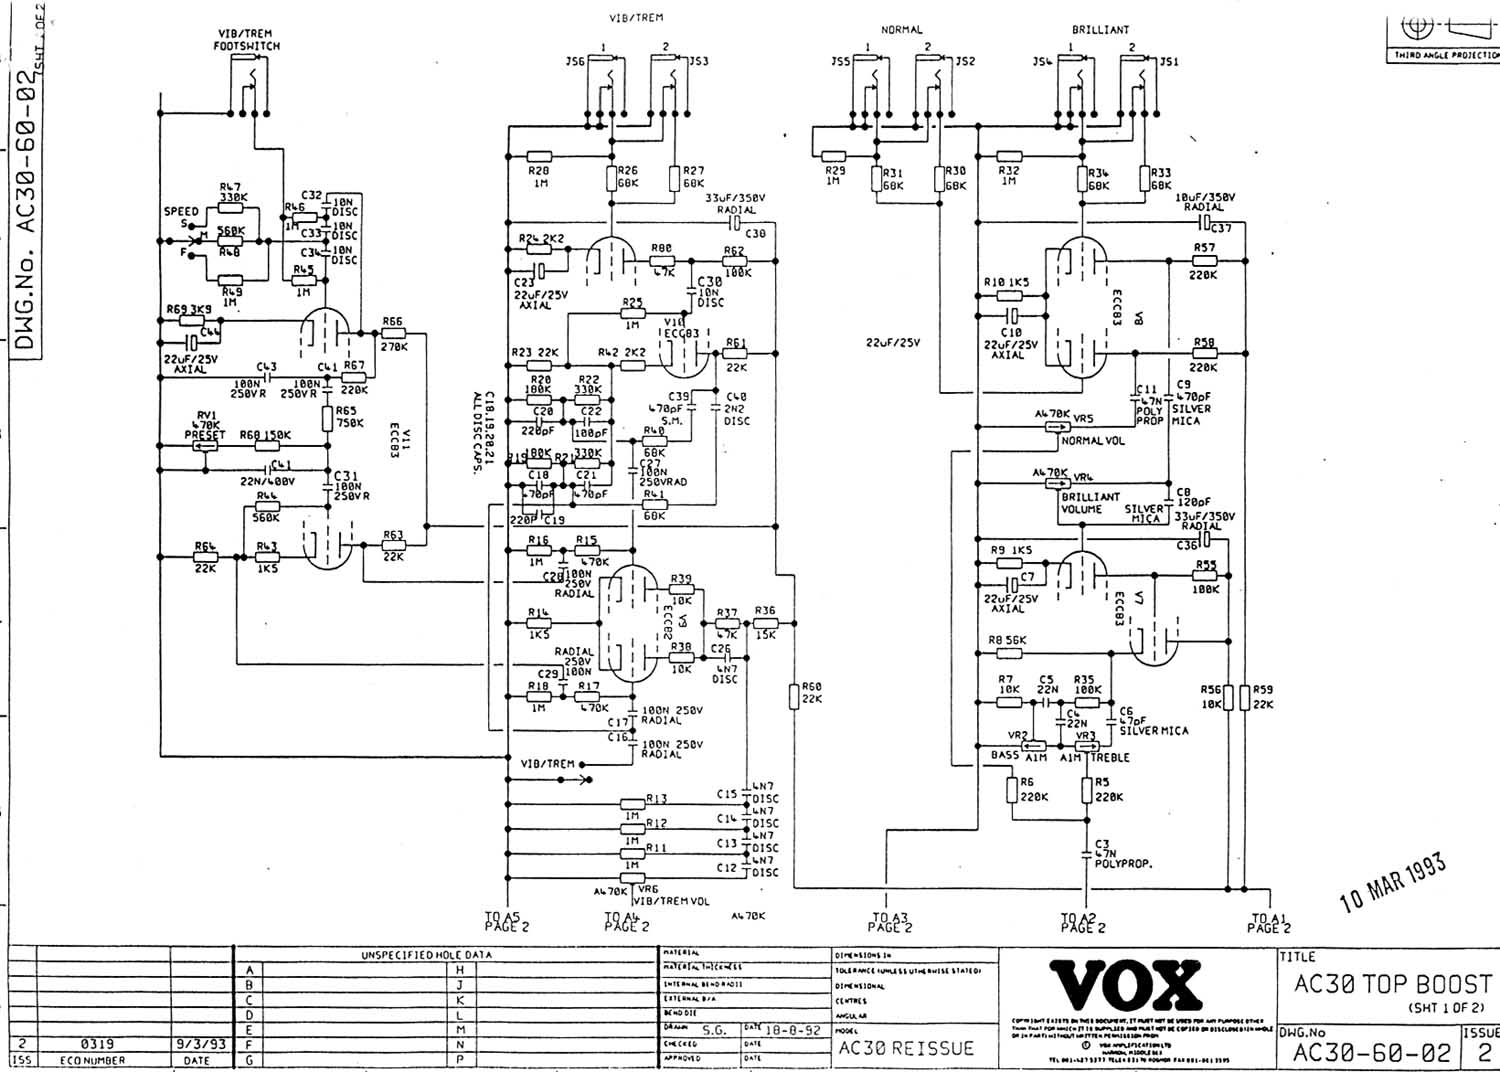 ac3093pr Ac Schematic on old vox, diy vox, vs dc30, vox amplug 2, ac15 vs, best tubes for vox, best settings for vox,